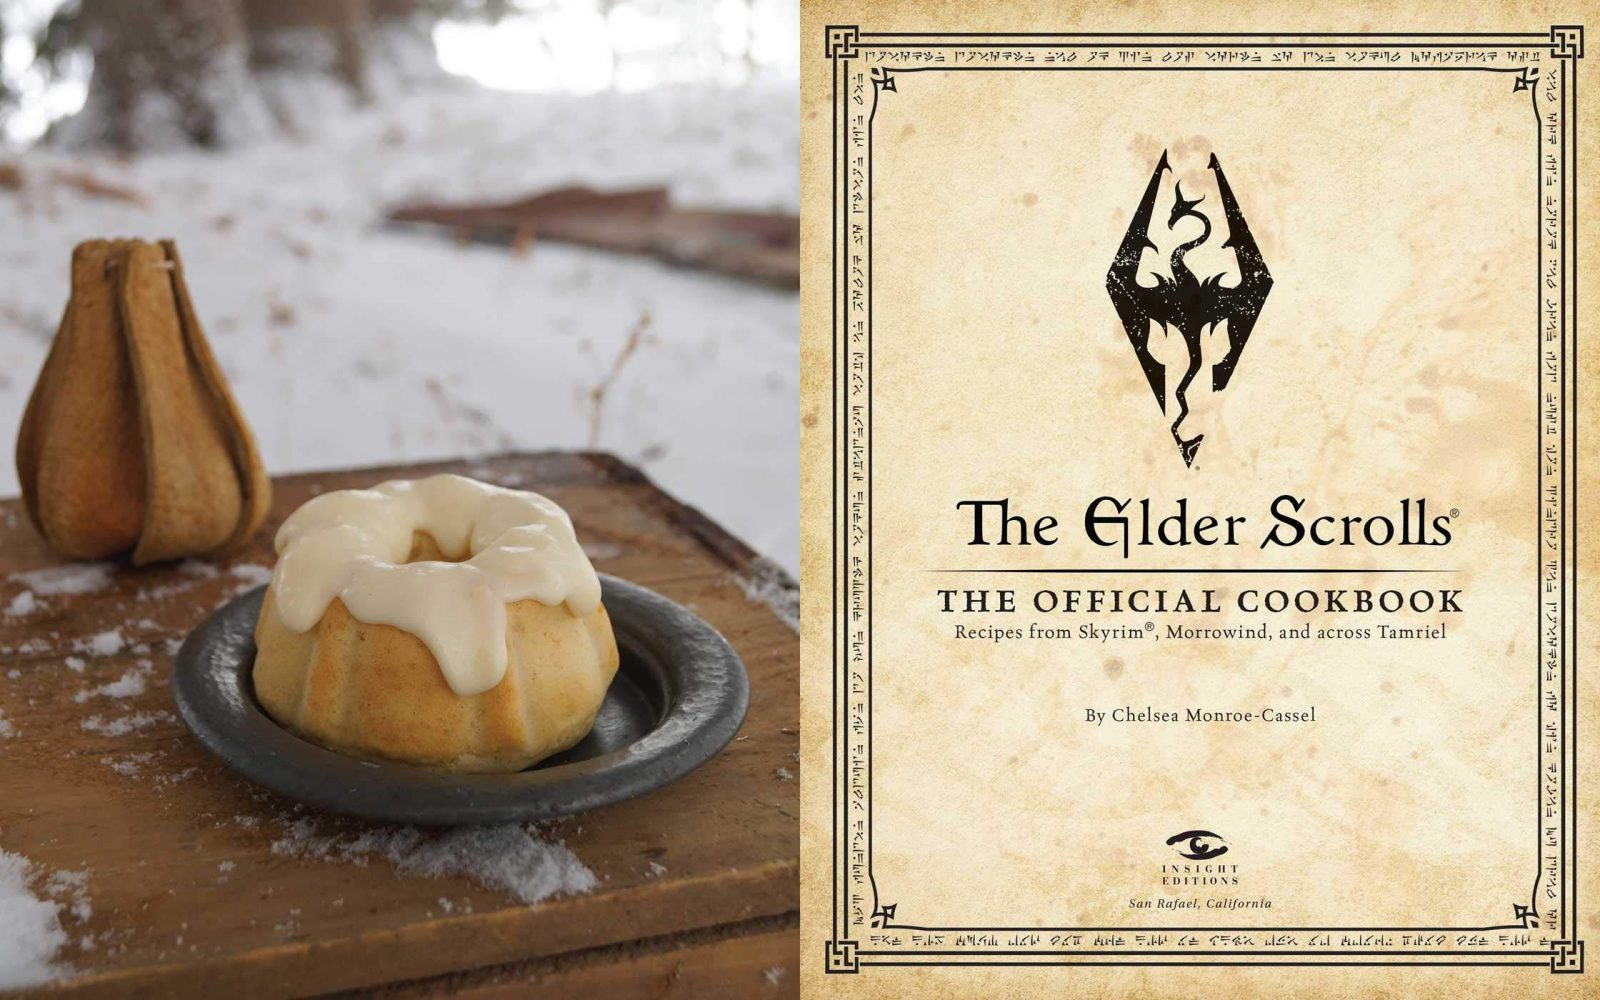 The Elder Scrolls Official Cookbook